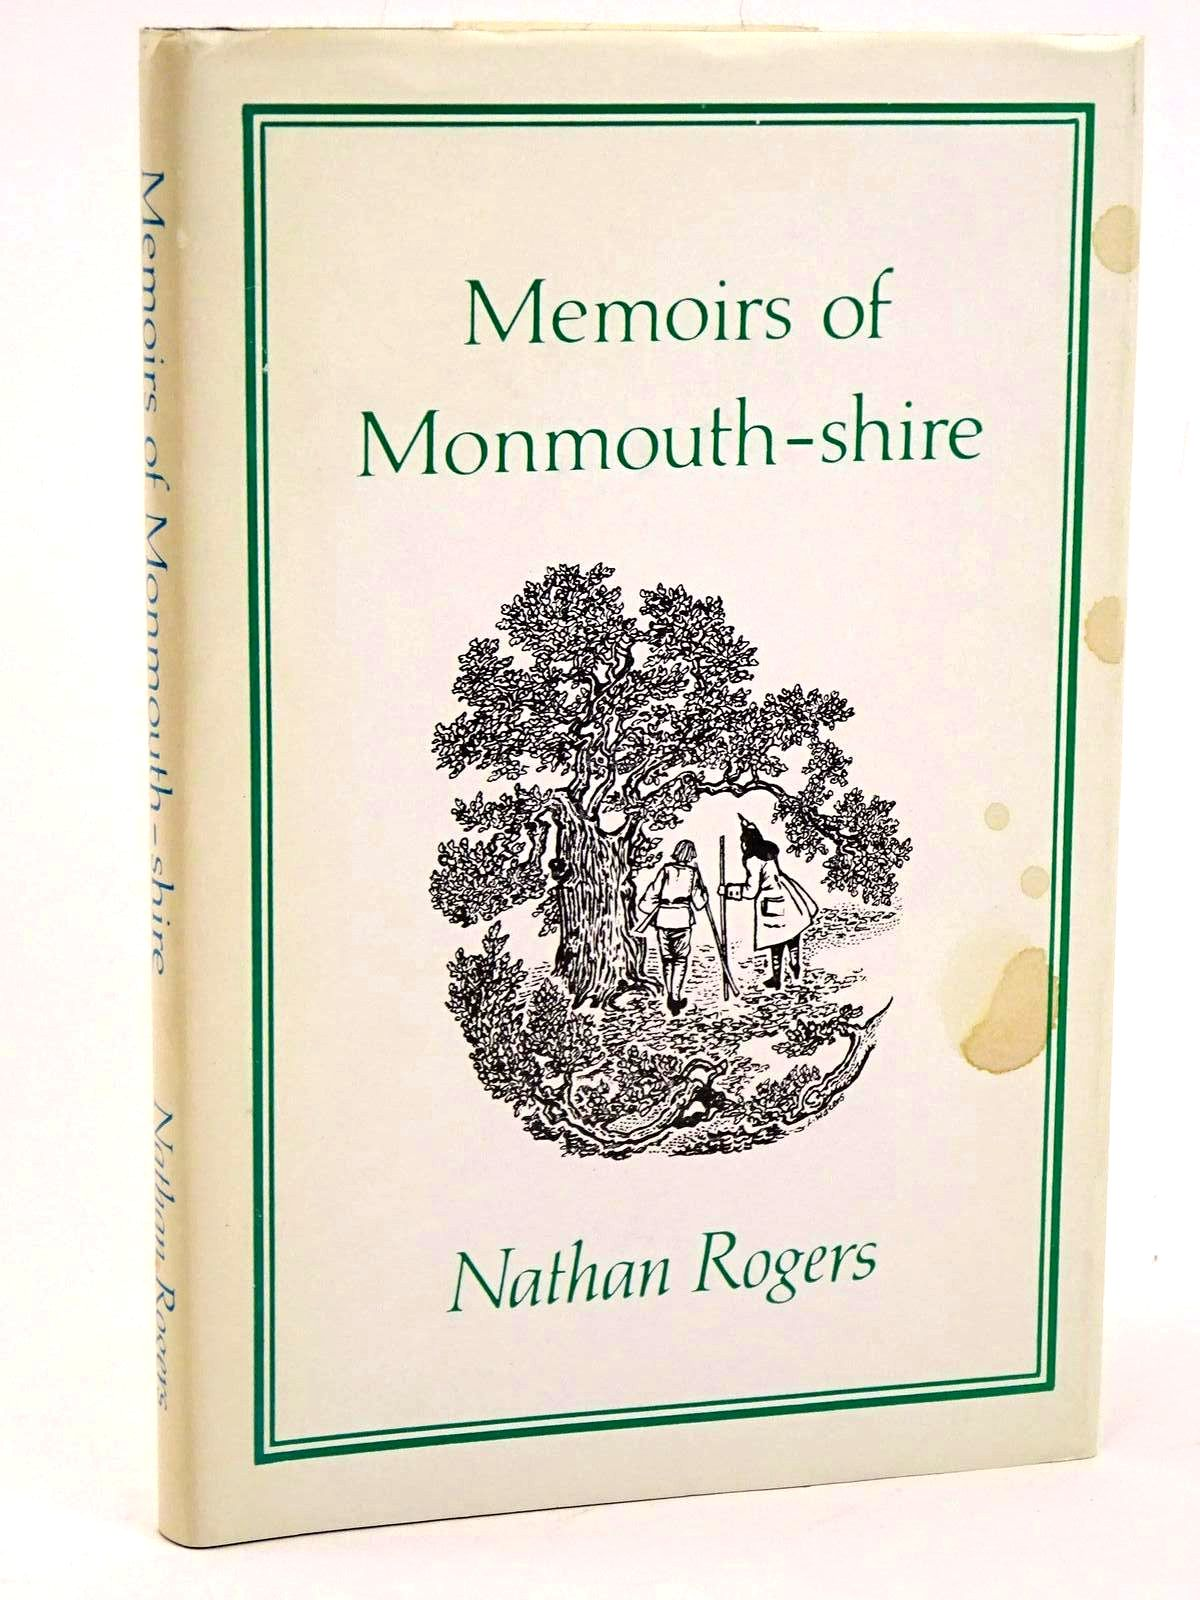 Photo of MEMOIRS OF MONMOUTH-SHIRE 1708 written by Rogers, Nathan illustrated by Waters, Linda published by Moss Rose Press (STOCK CODE: 1318392)  for sale by Stella & Rose's Books